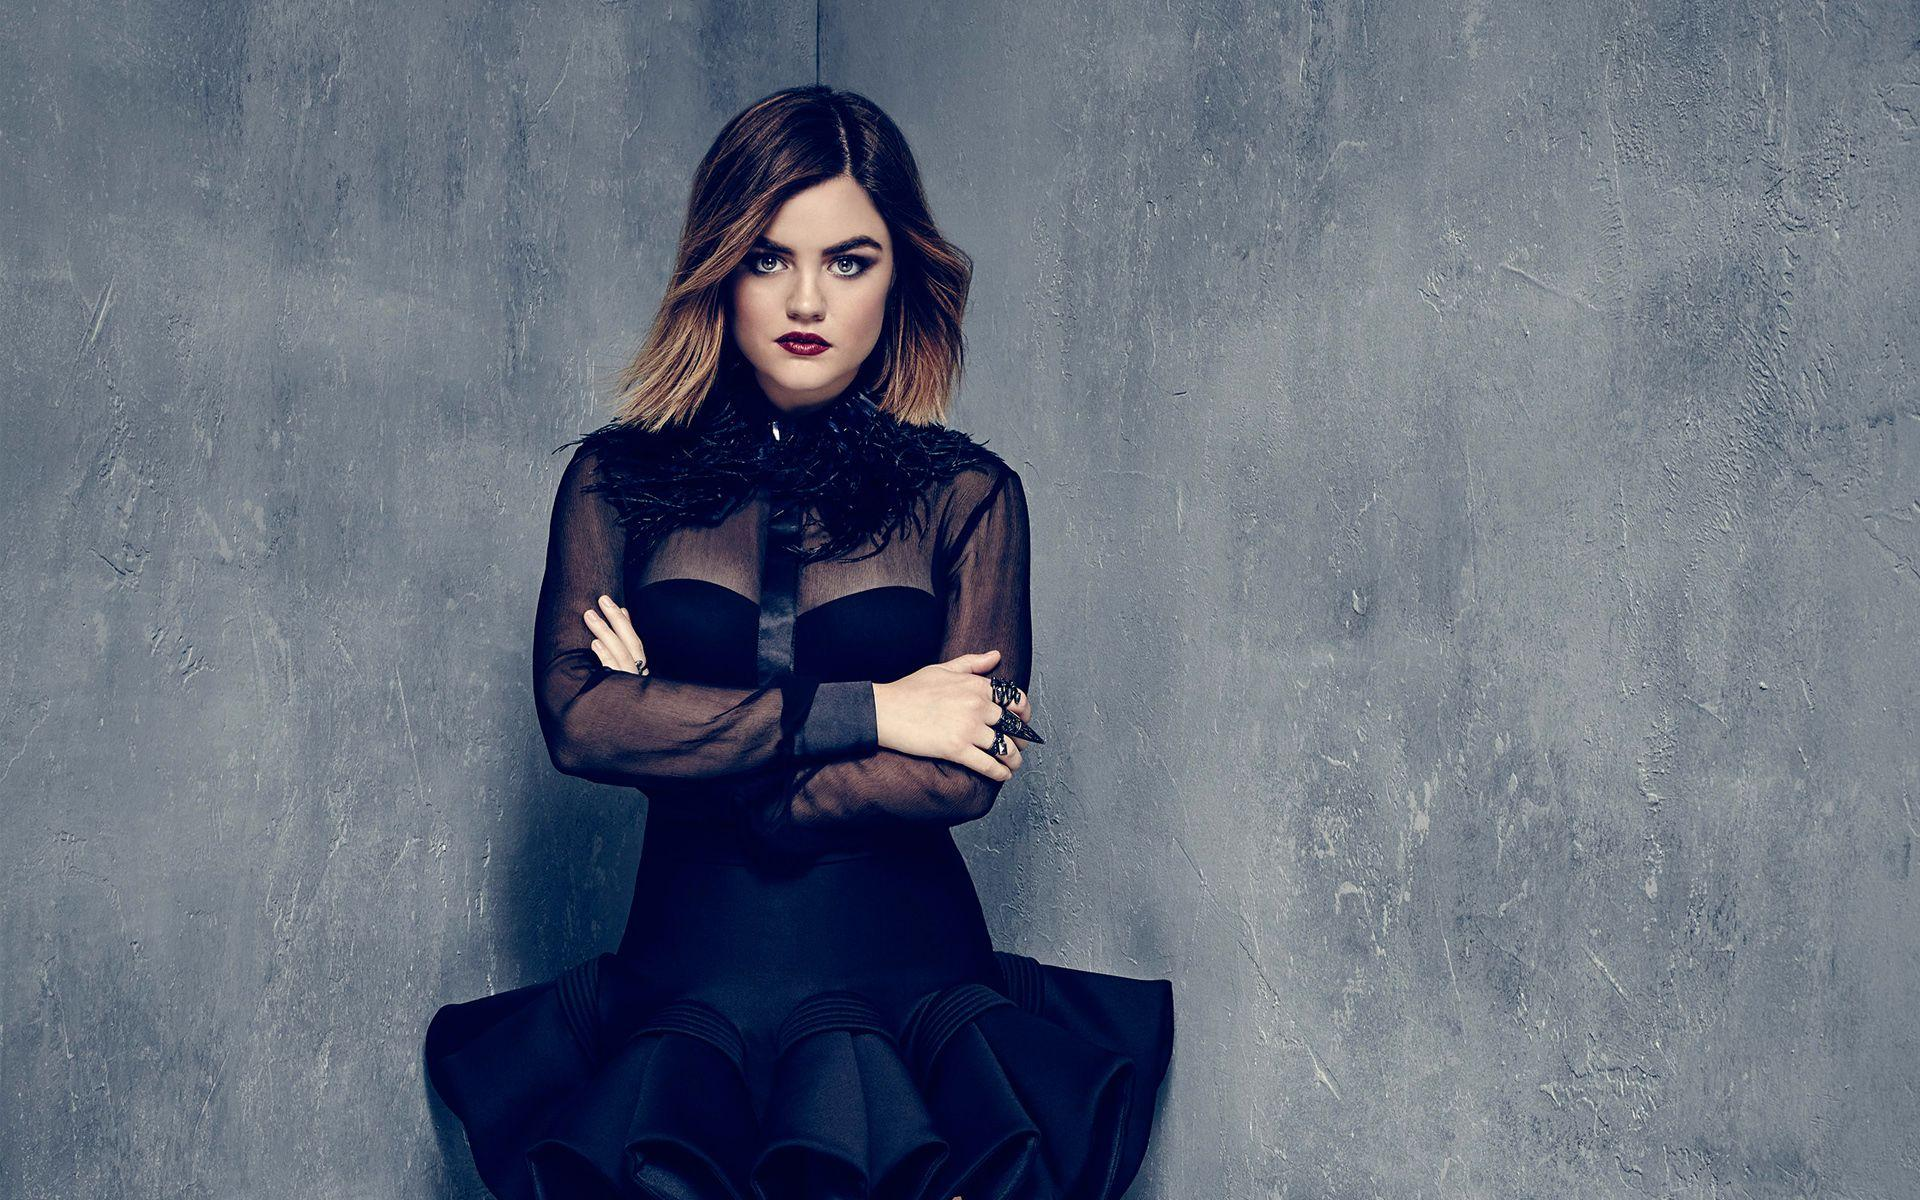 Lucy Hale 2016 Wallpapers | HD Wallpapers